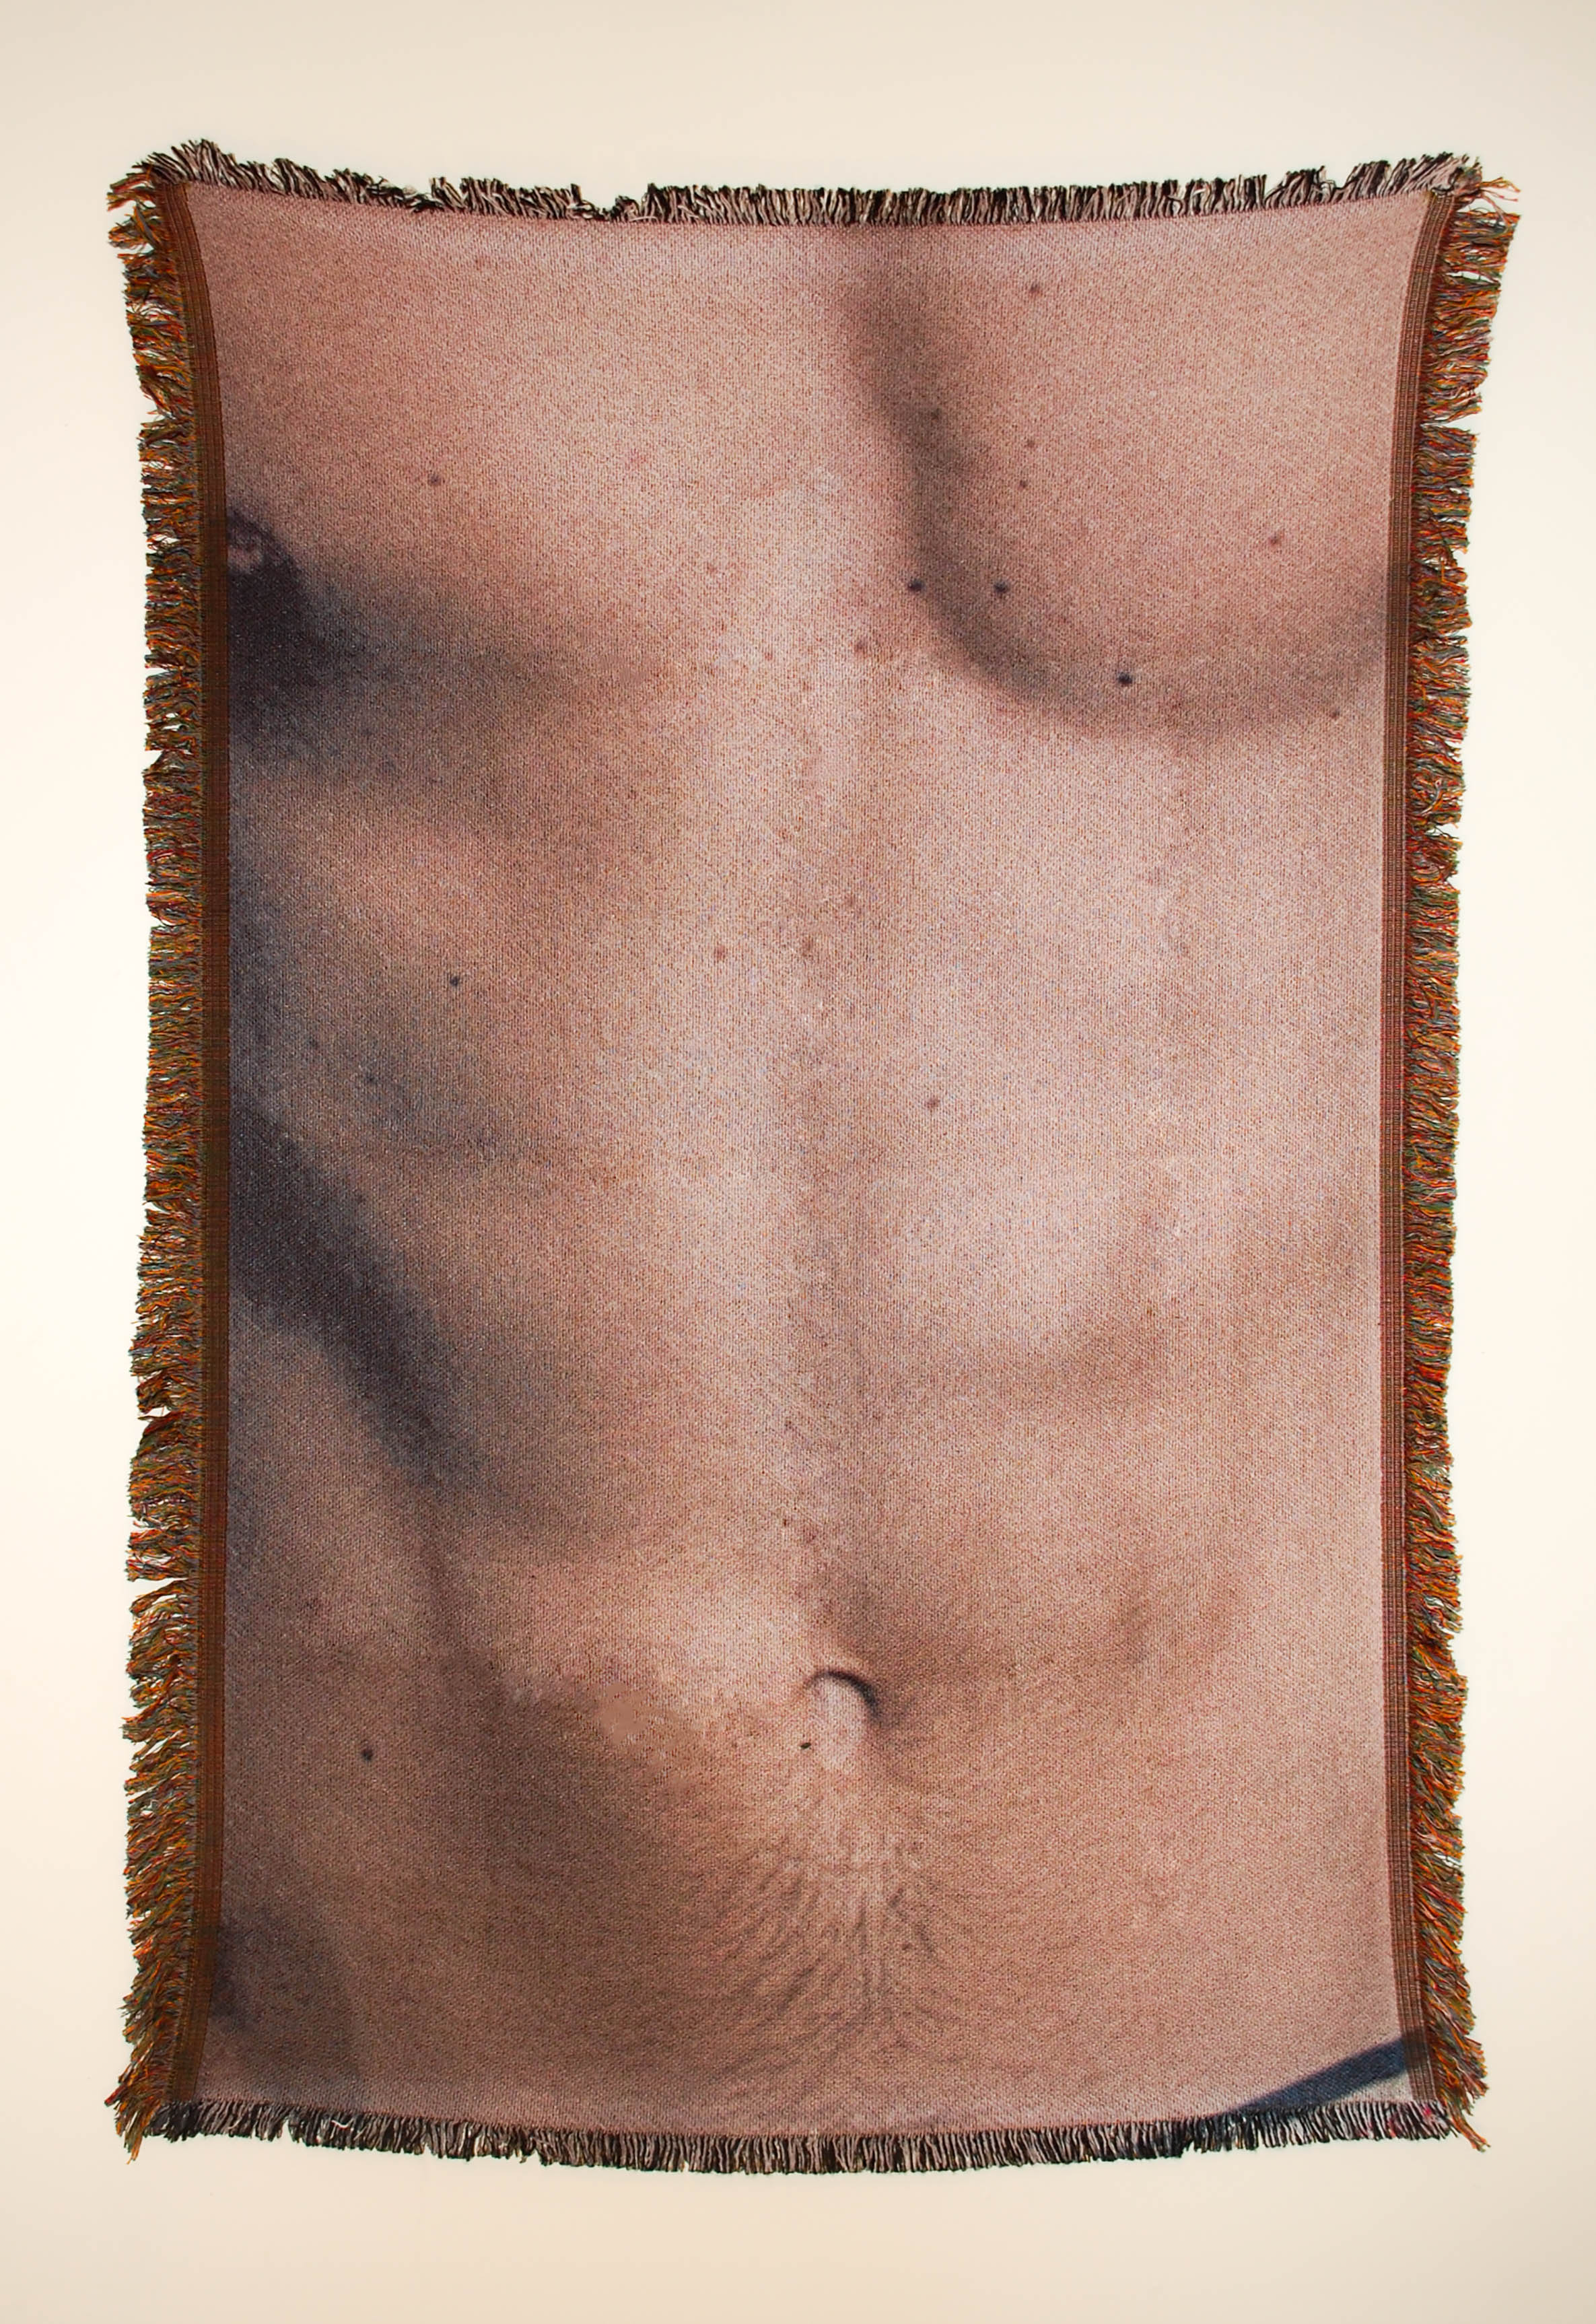 "Untitled (Cis-male 5)  54"" x 38"" photo-sublimated woven blanket"